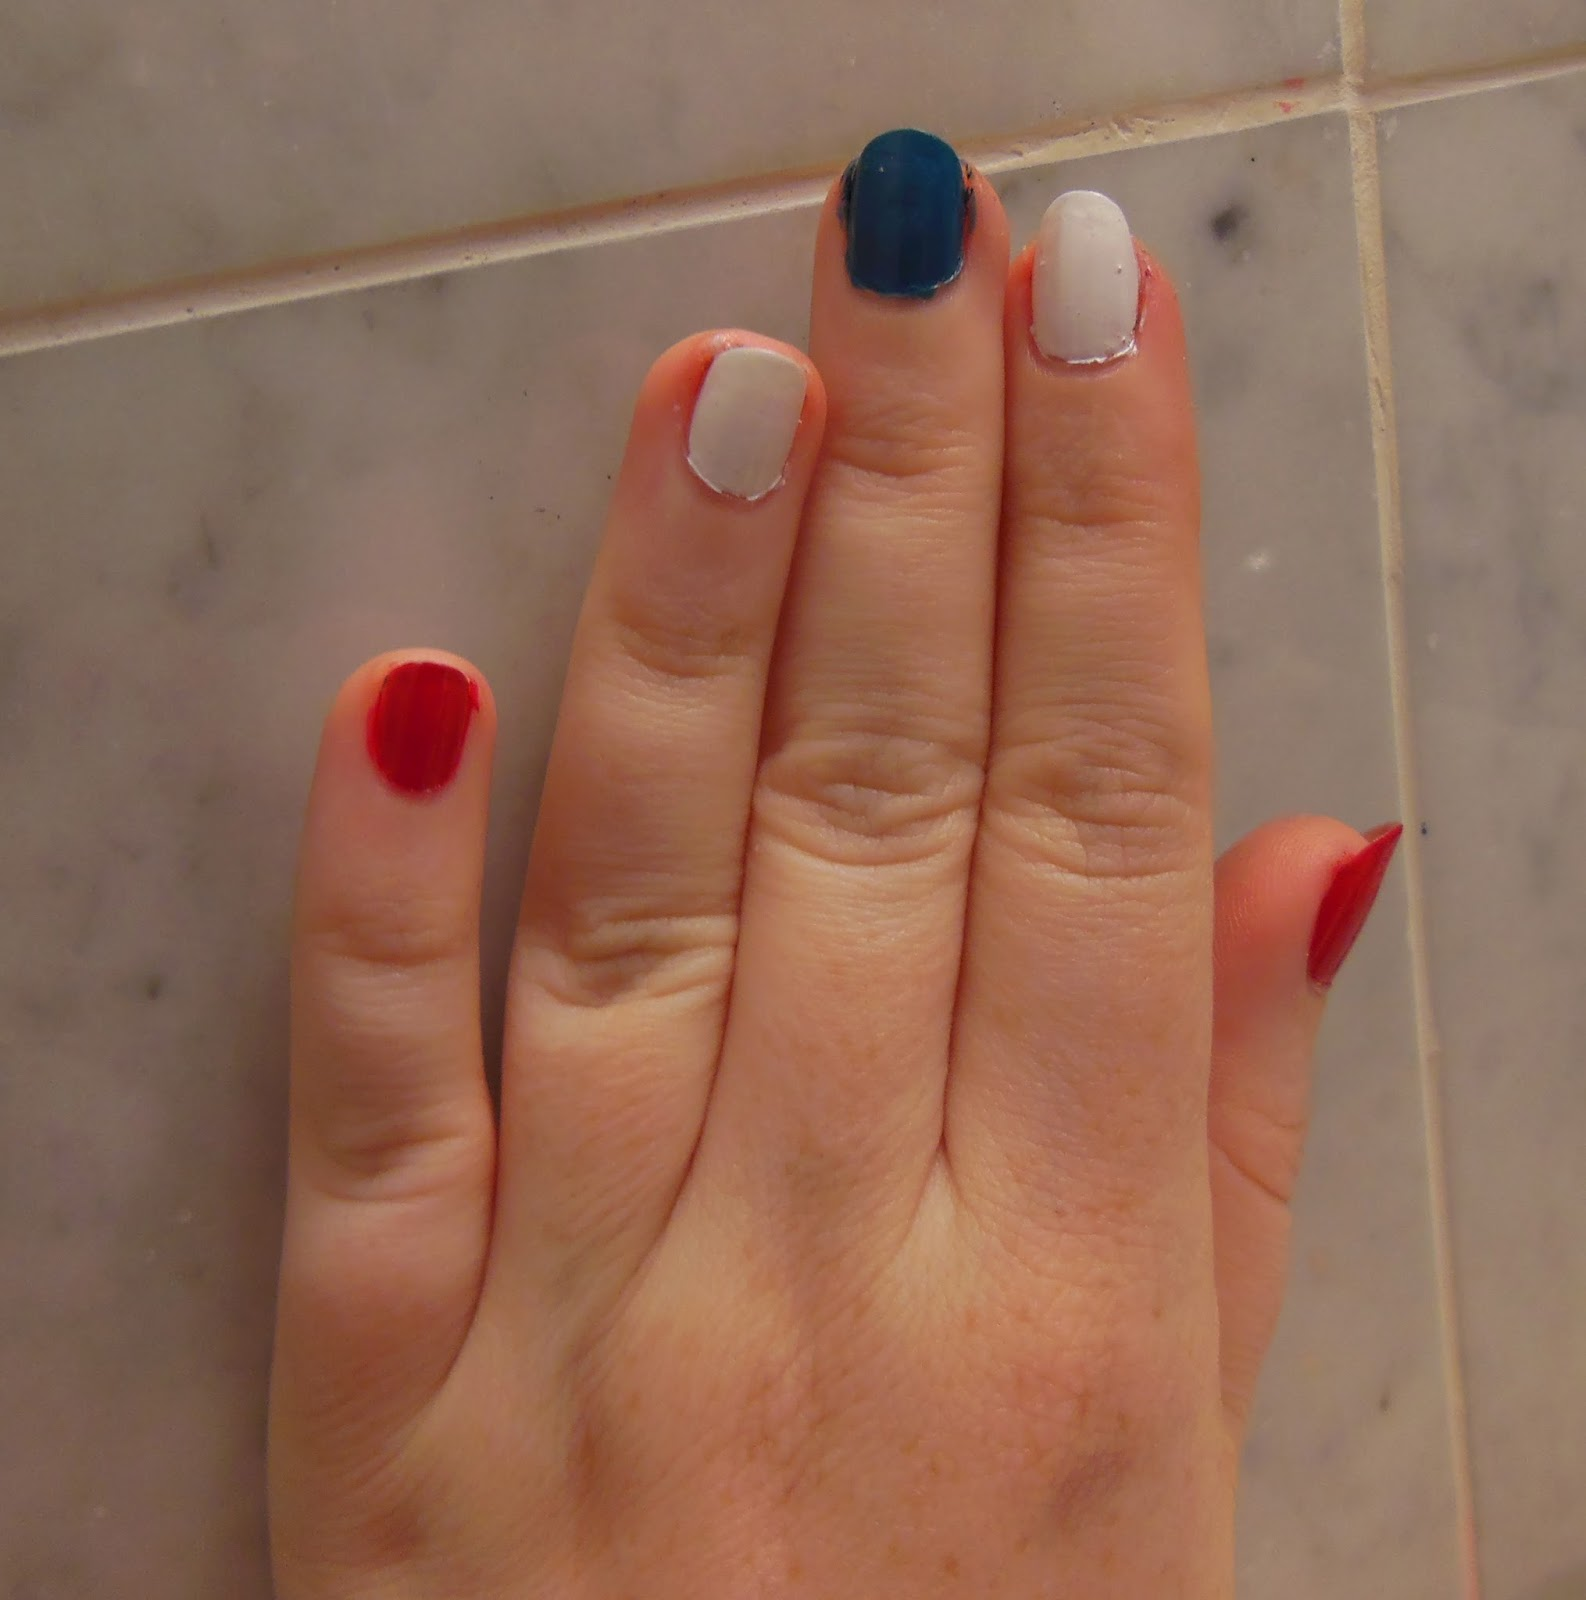 Petite in the City: New York Giants #Fanicure With COVERGIRL